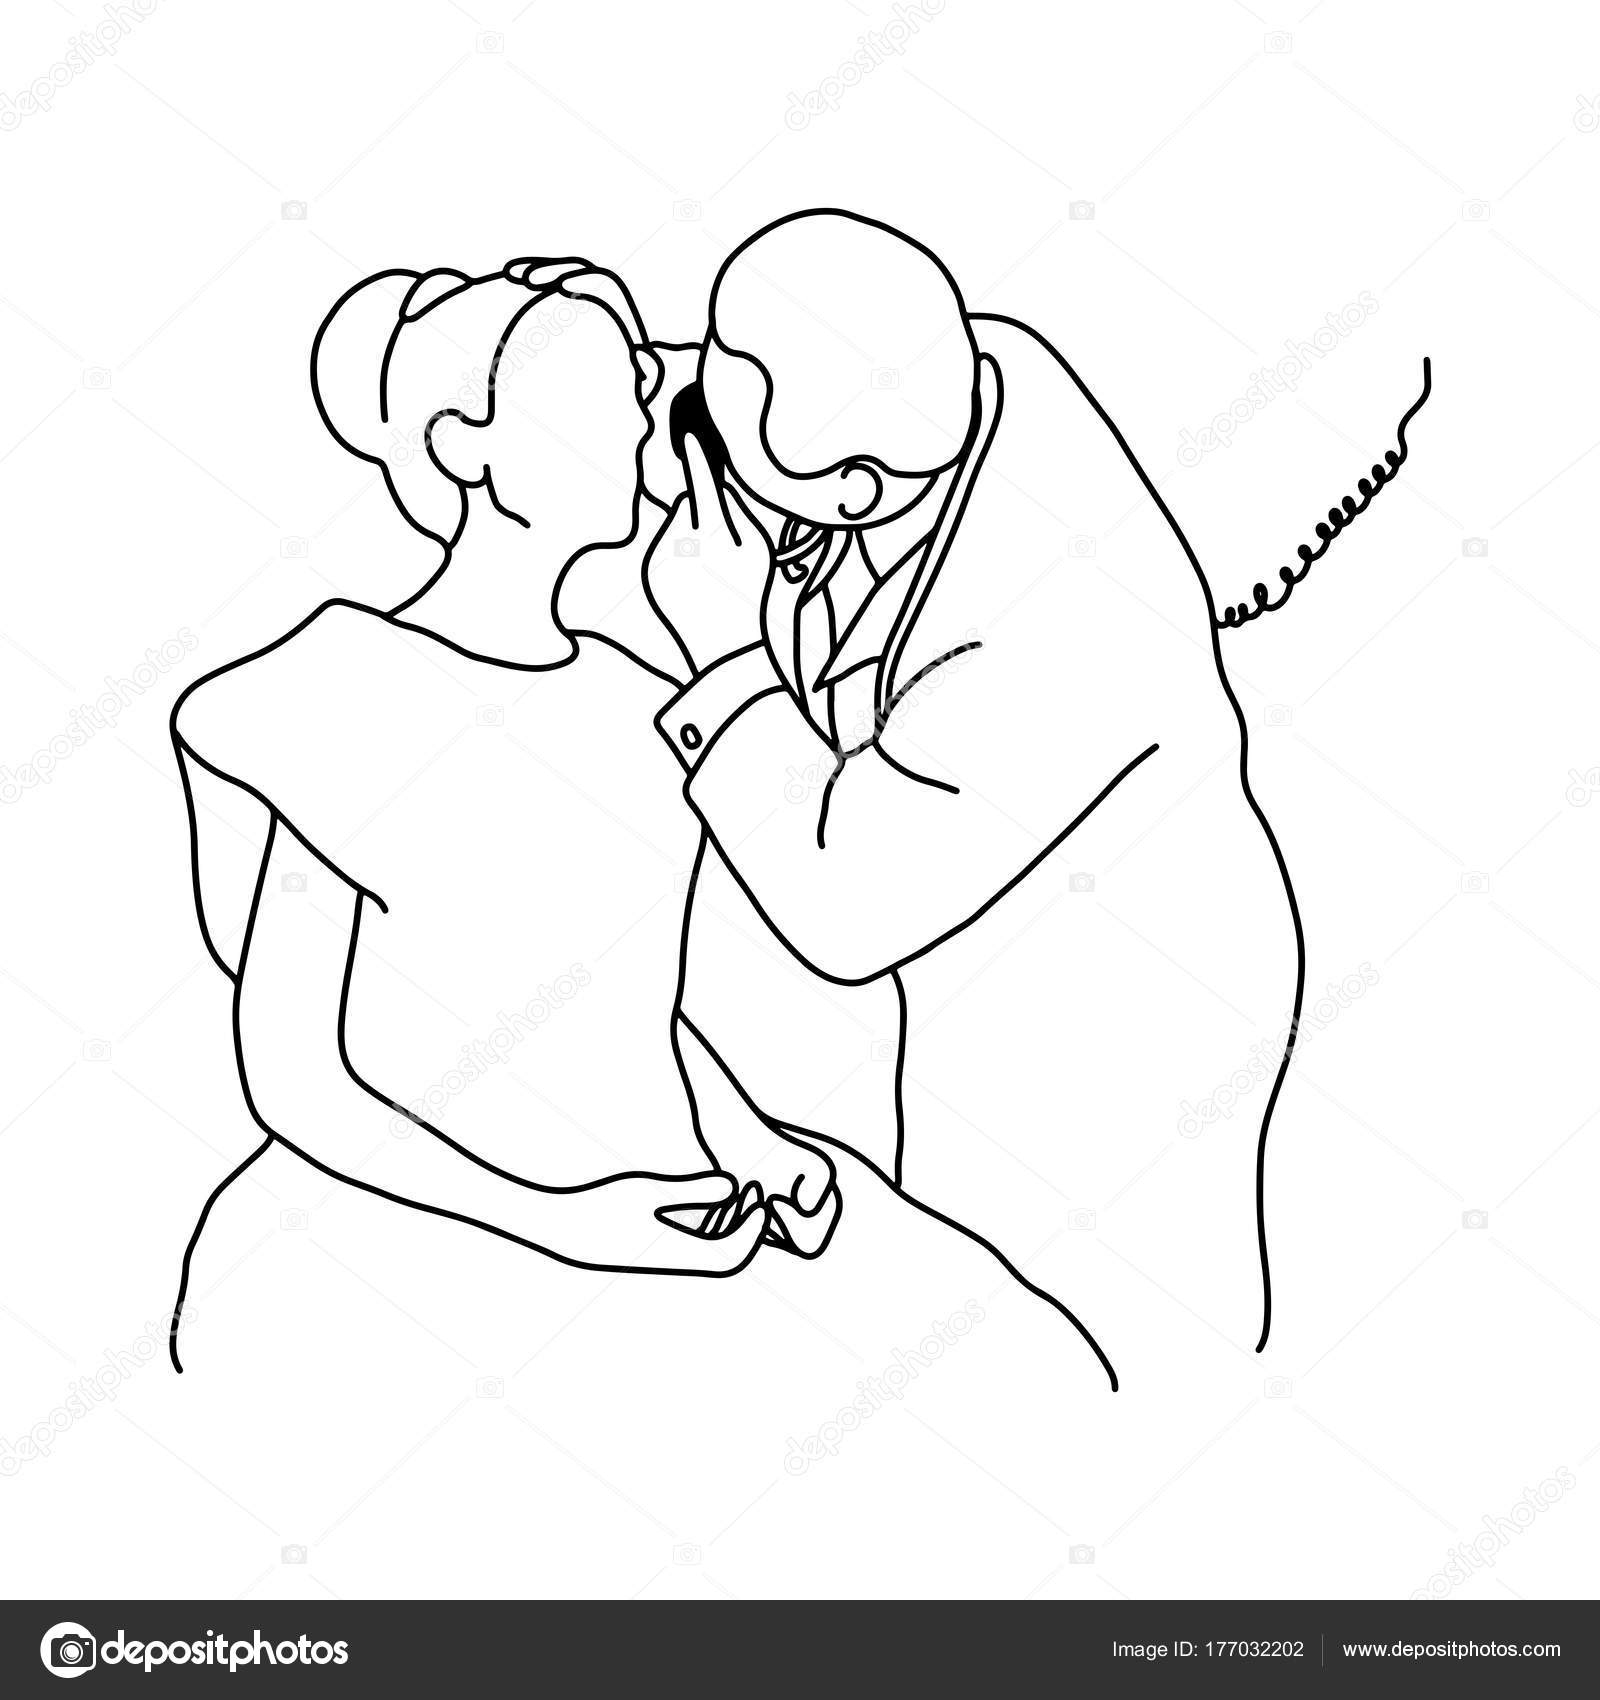 The Best Free Patient Drawing Images Download From 208